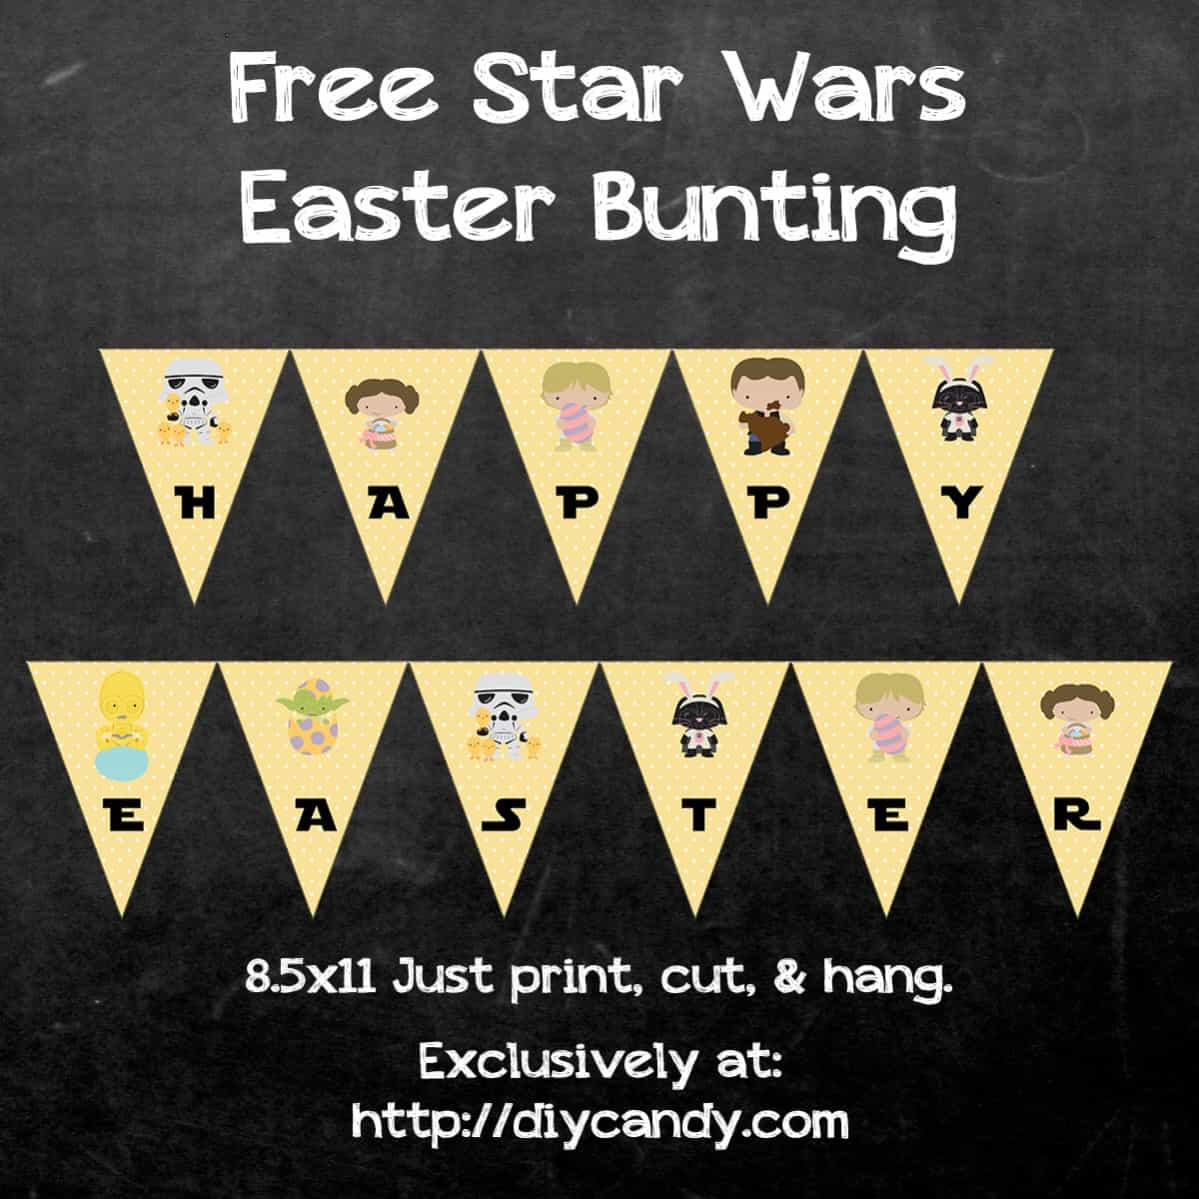 Star Wars Easter Bunting